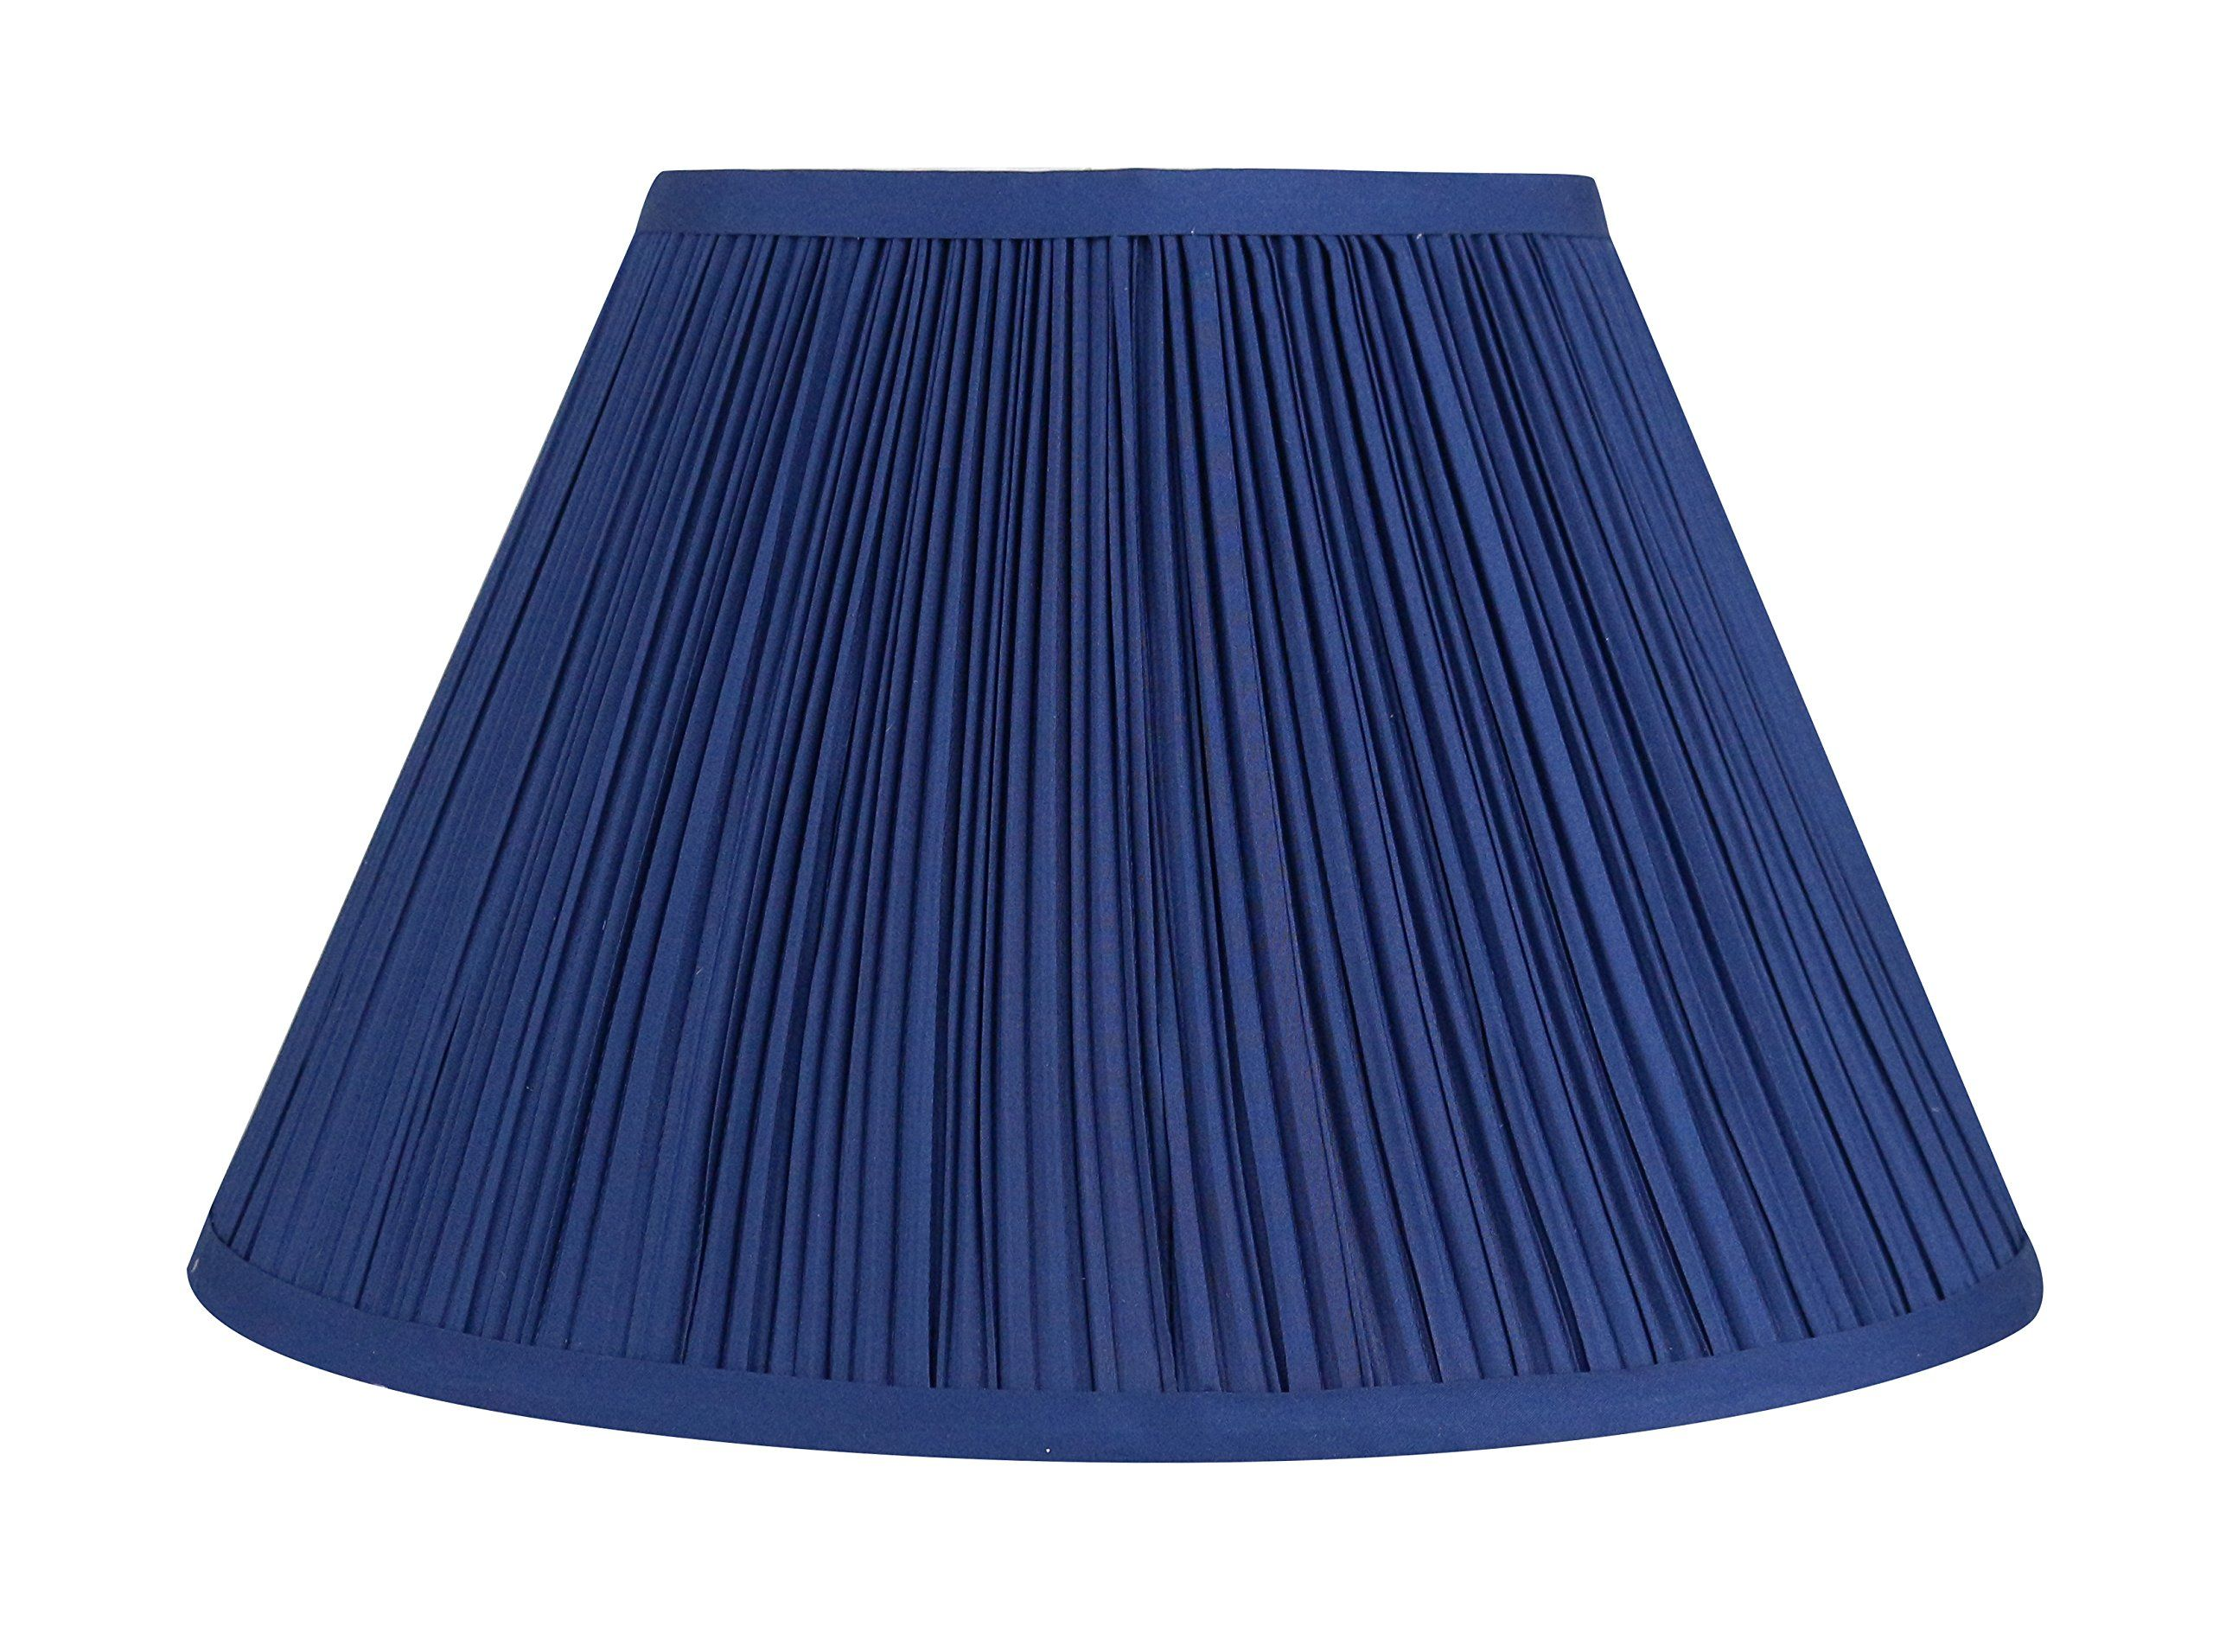 Urbanest Mushroom Pleated Softback Lamp Shade Faux Silk 6inch By 12inch By 8inch Navy Blue Spider Washer Fitter You Can Get More Det Lamp Shade Lamp Shades